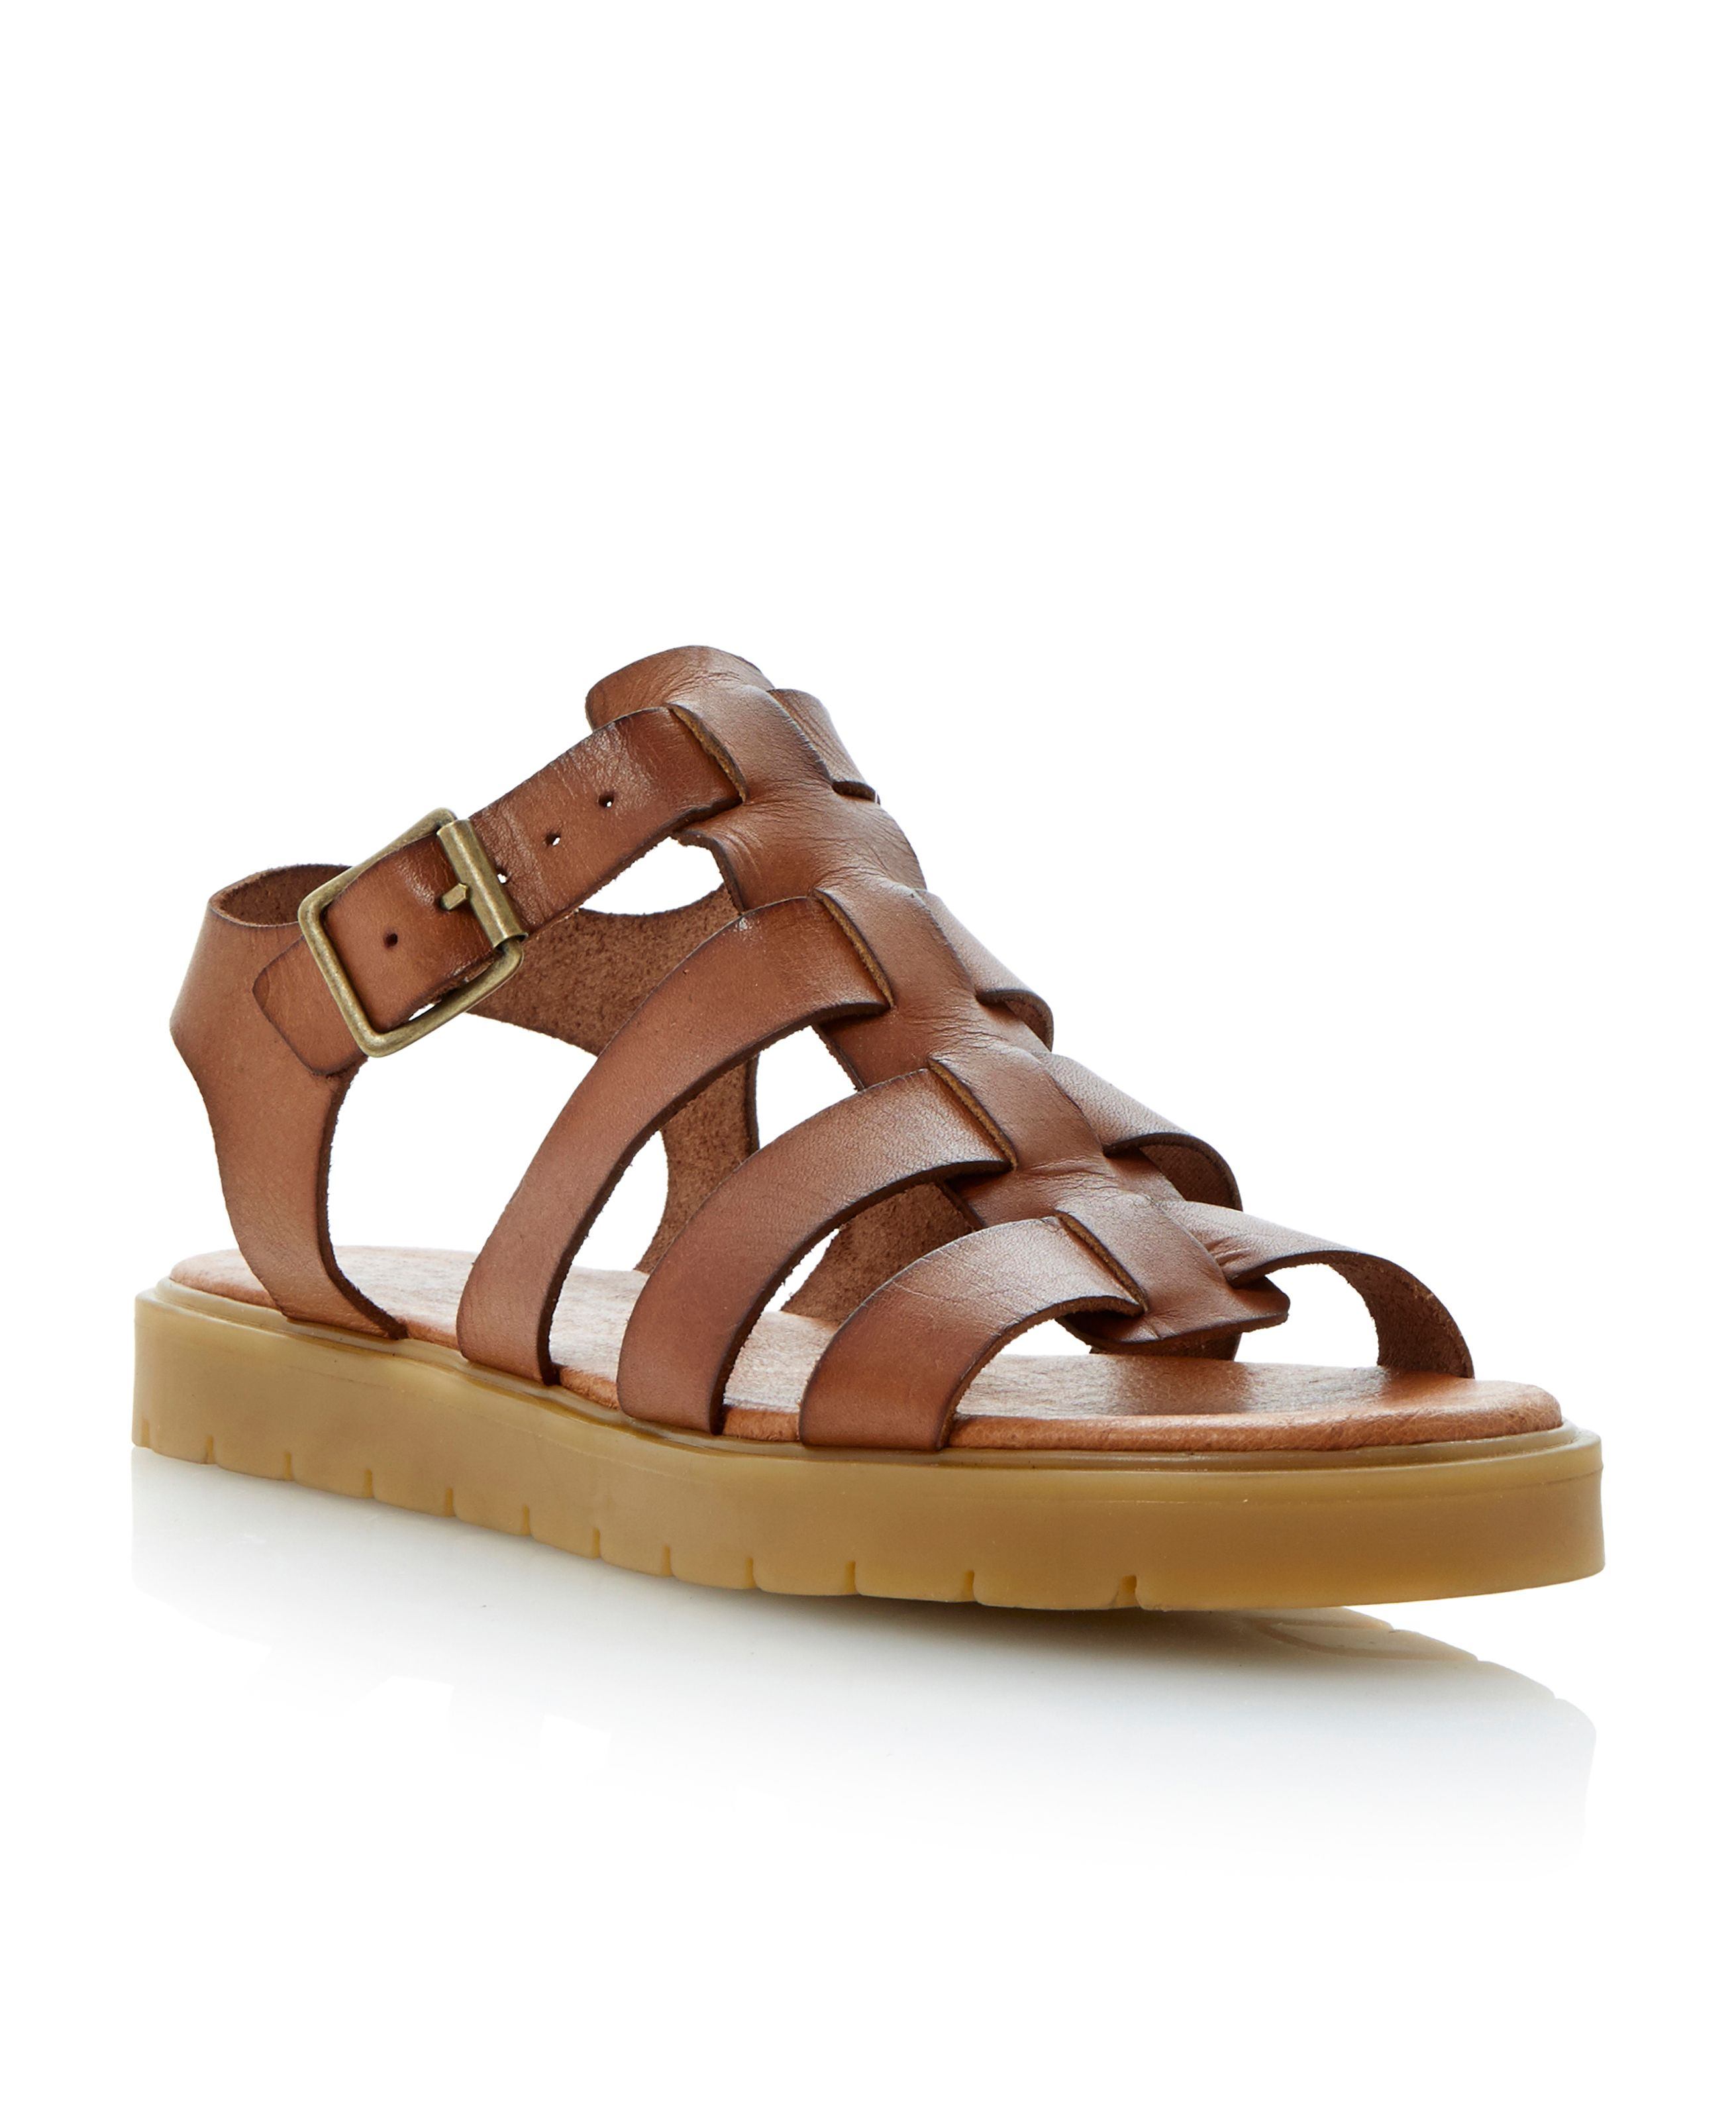 Jarny leather buckle sandals